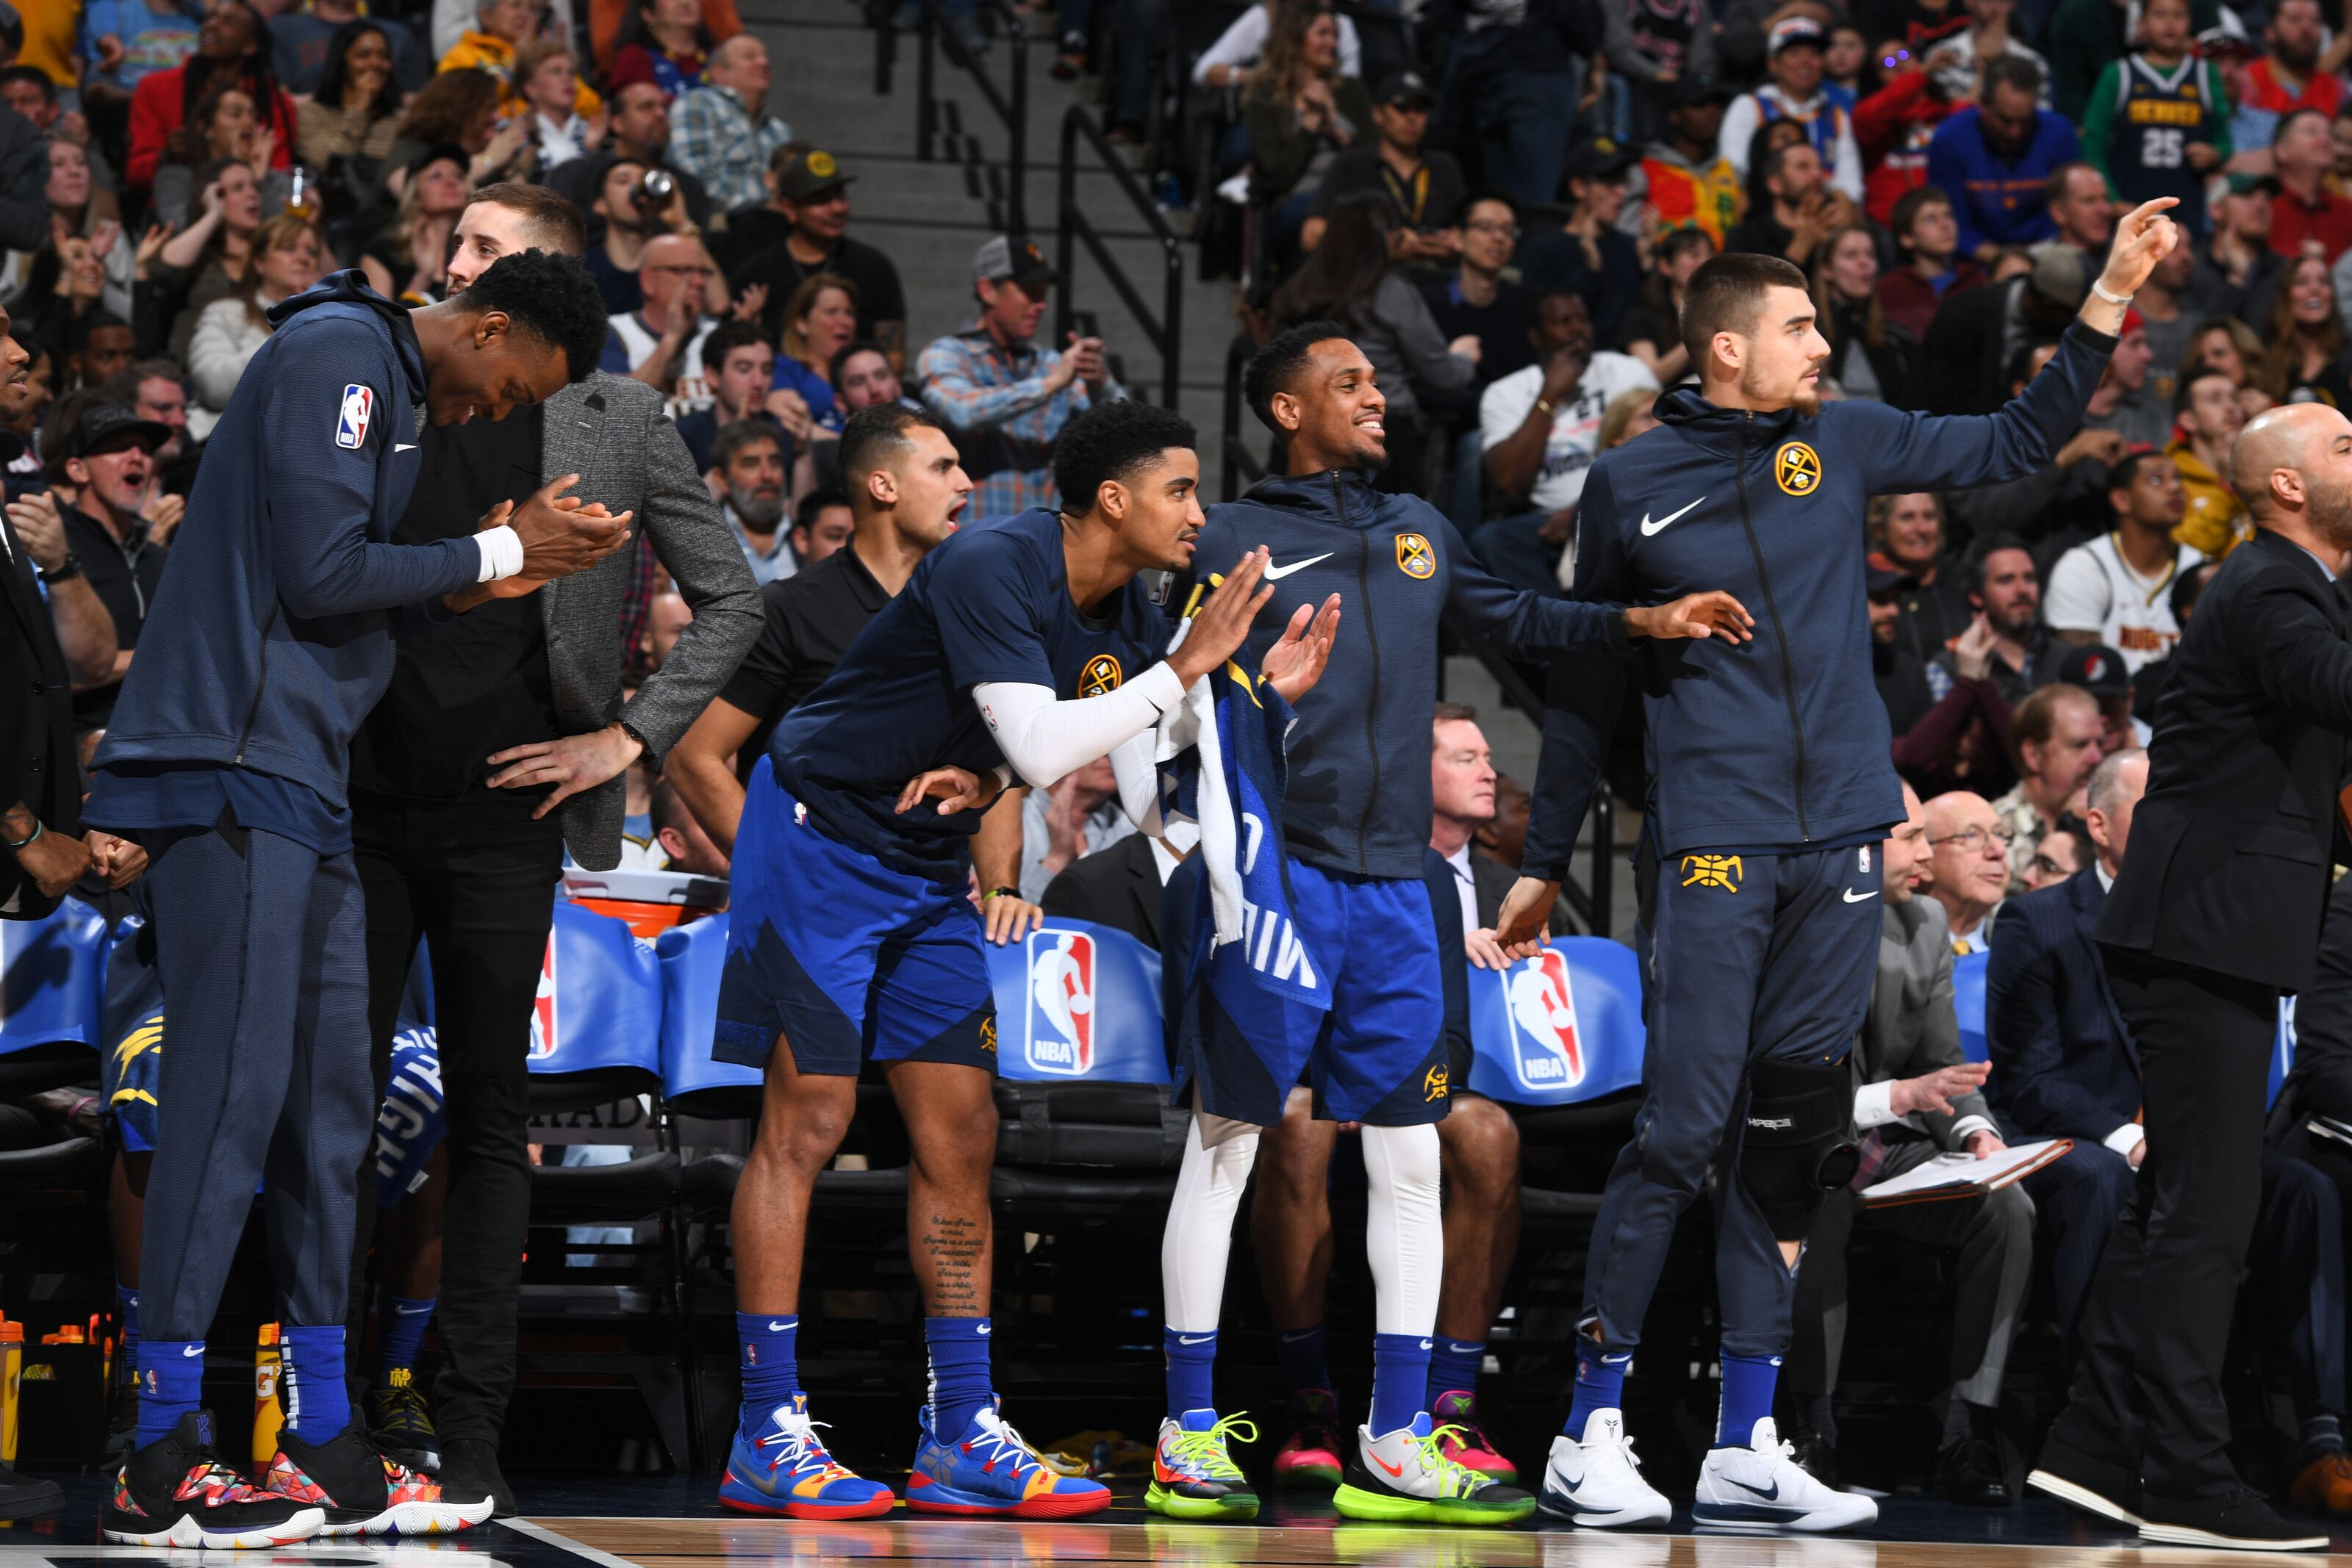 Denver Nuggets: The Nuggets would have never been swept in the WCF.